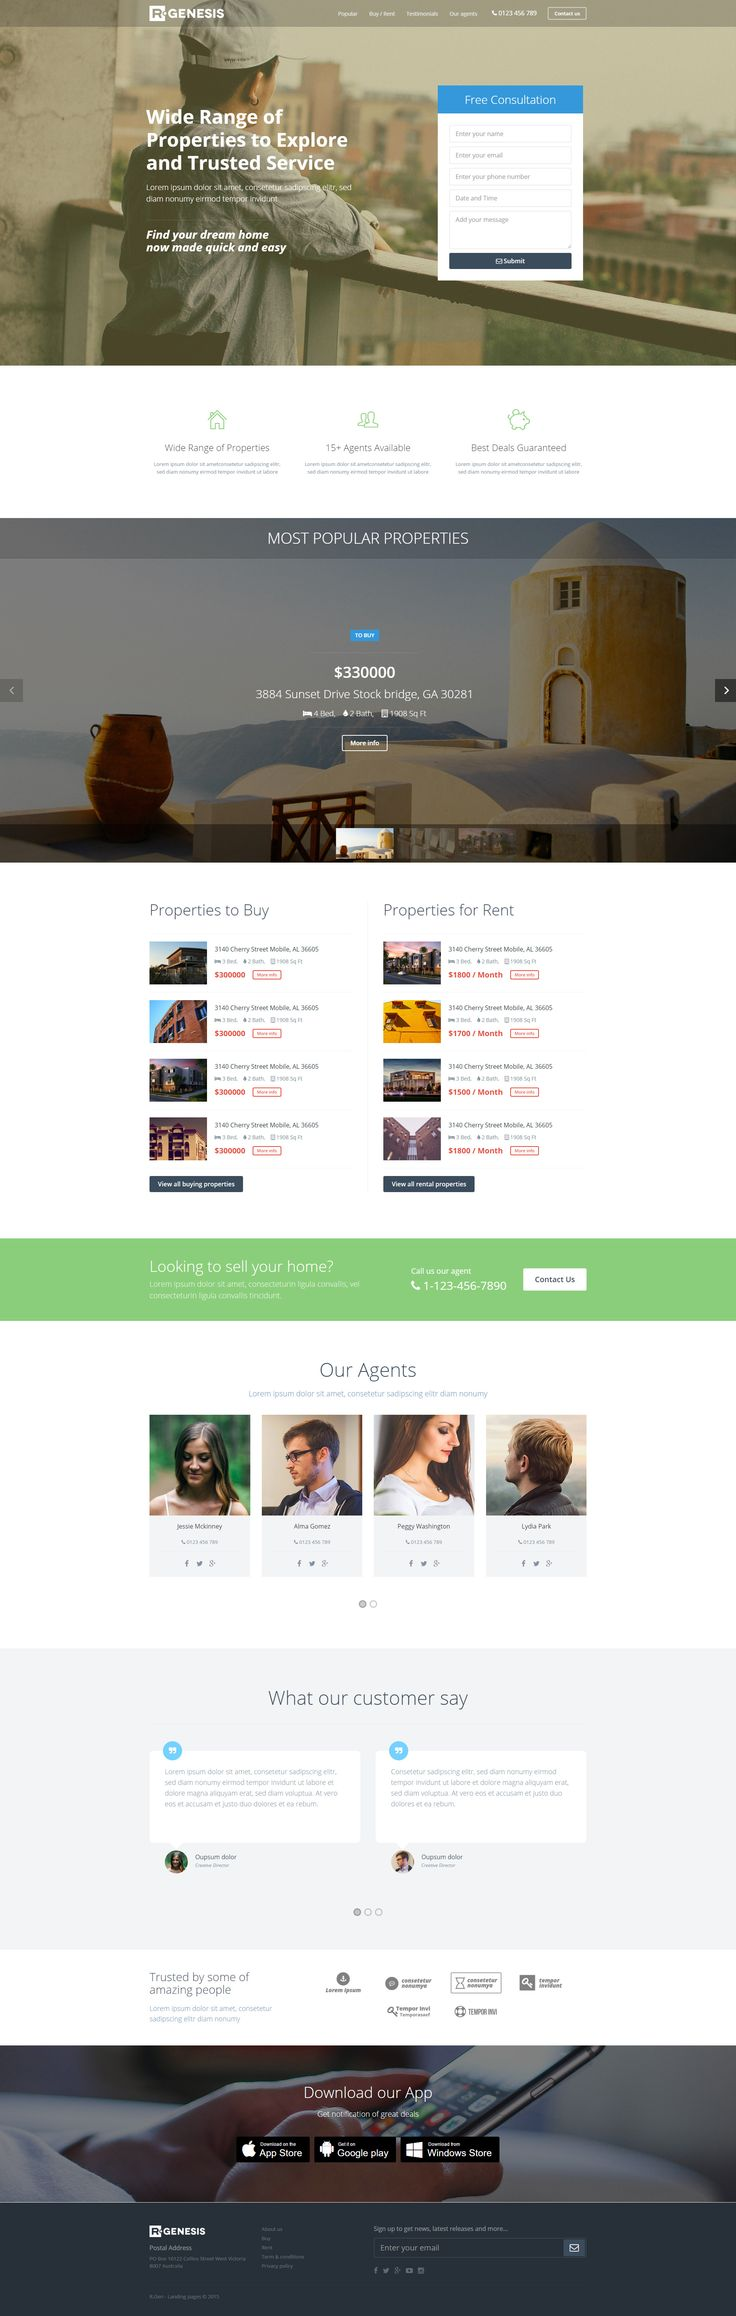 Real estate landing page template with page builder